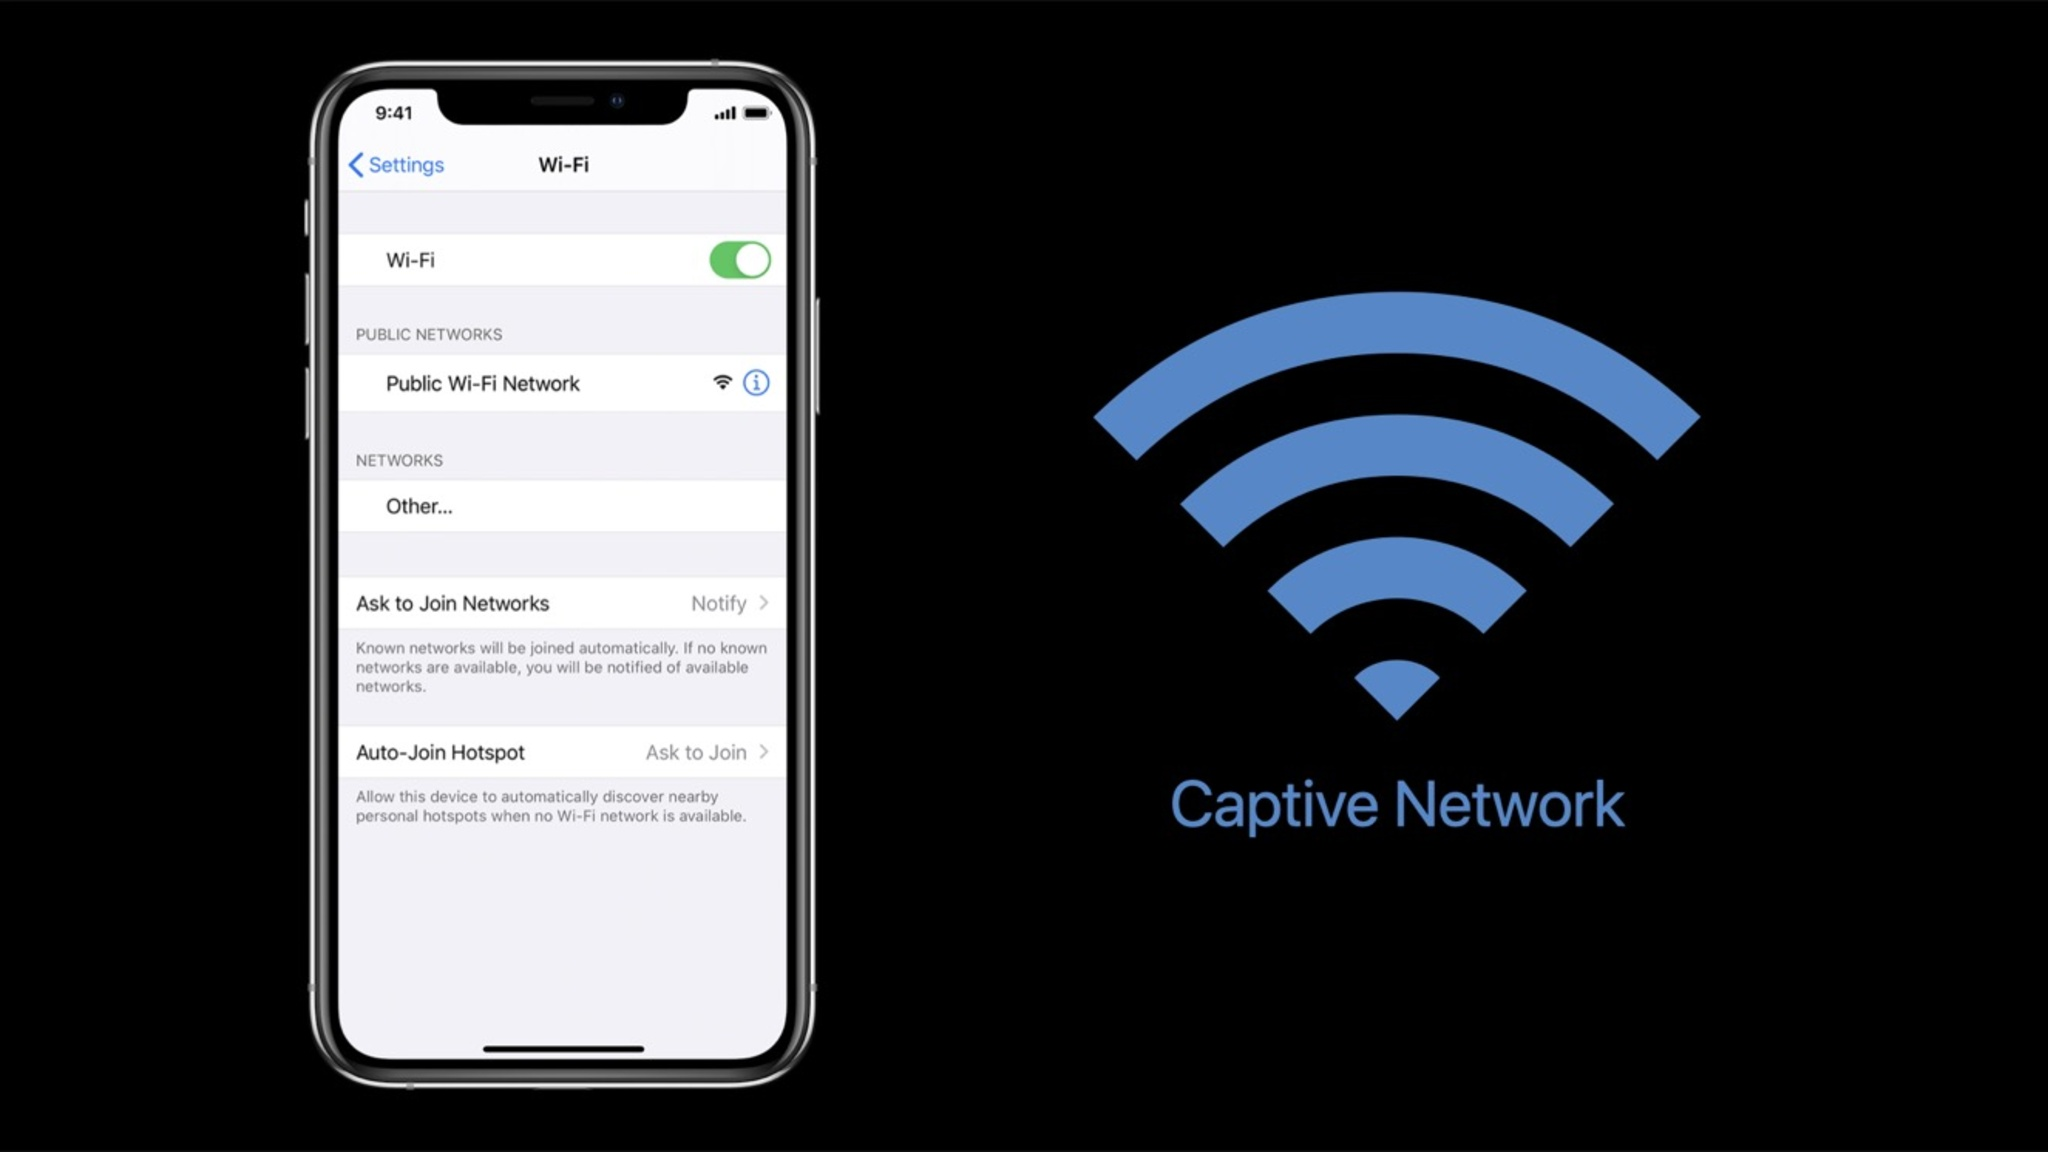 IPhone displaying wifi information on screen with the words Captive Network and wifi symbol to the right